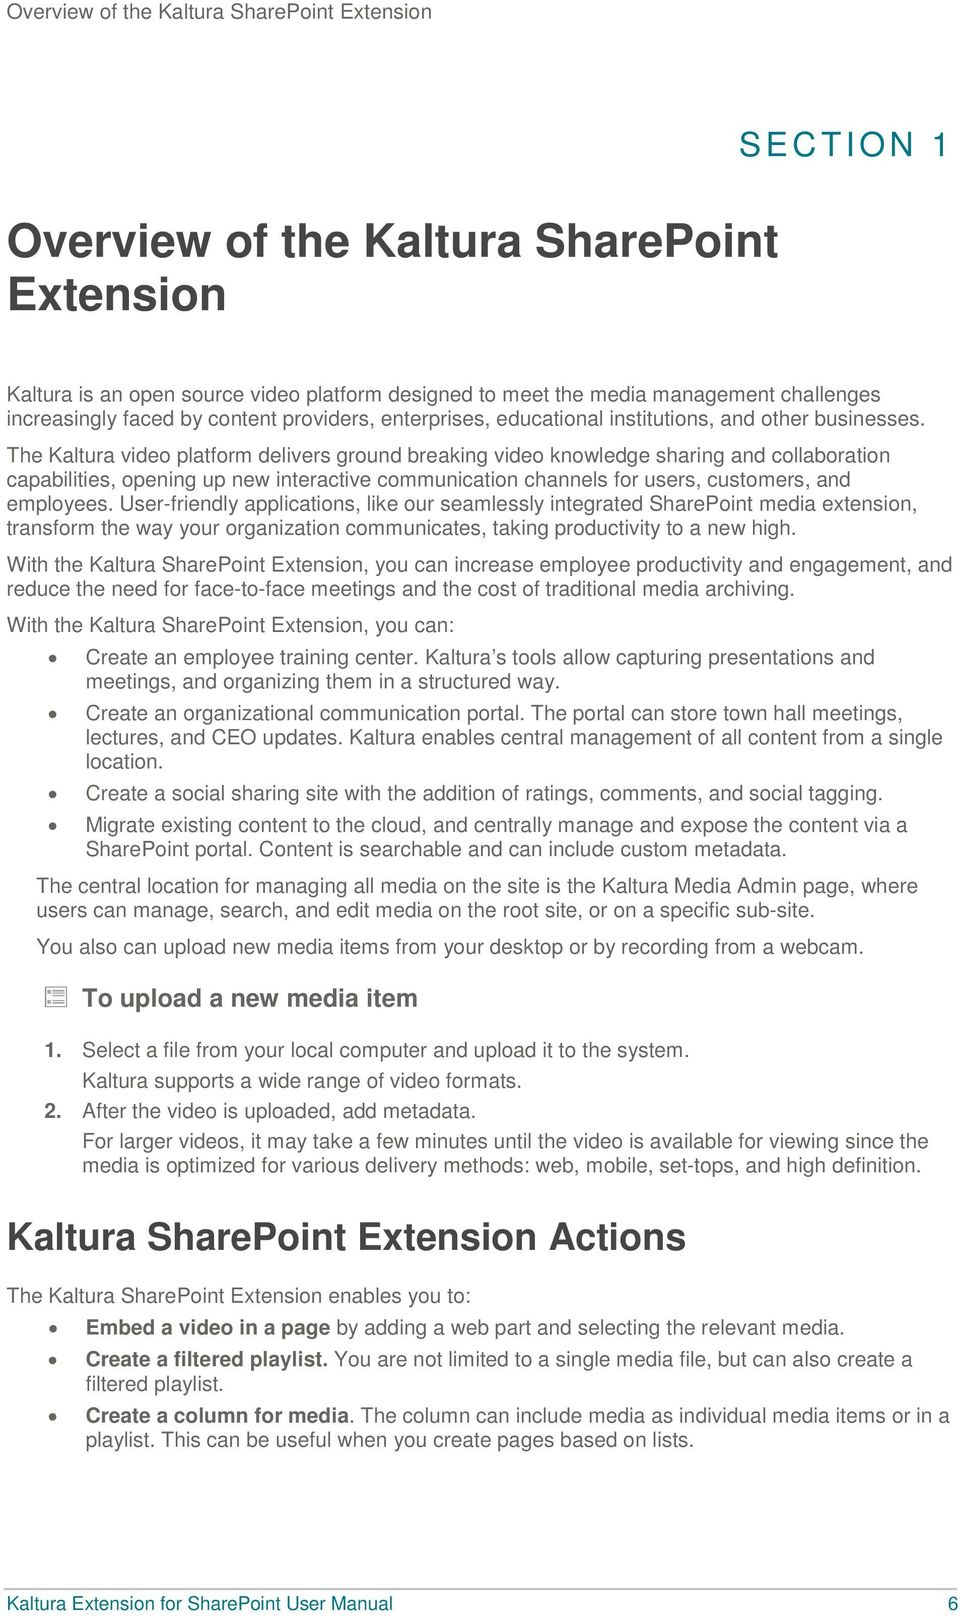 The Kaltura video platform delivers ground breaking video knowledge sharing and collaboration capabilities, opening up new interactive communication channels for users, customers, and employees.